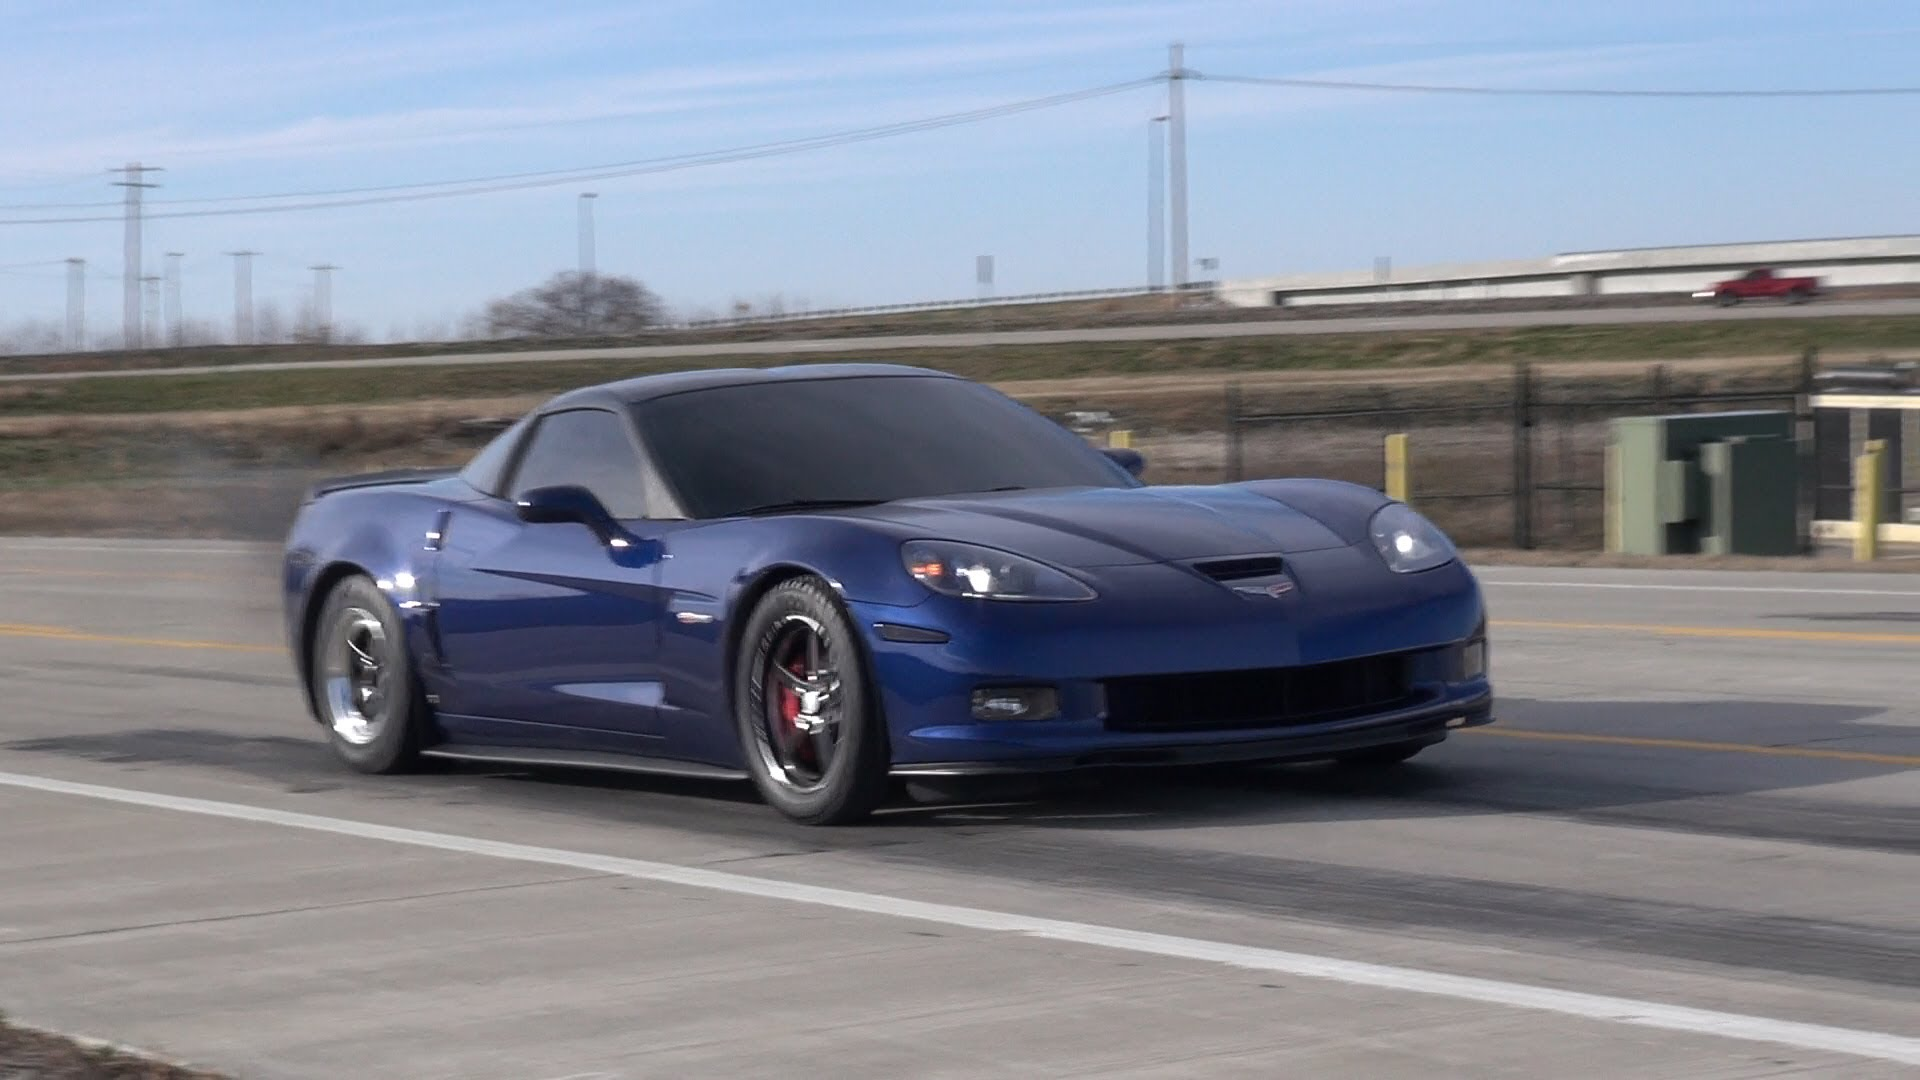 700HP NA C6 Corvette Z06 Tearing up the Streets!